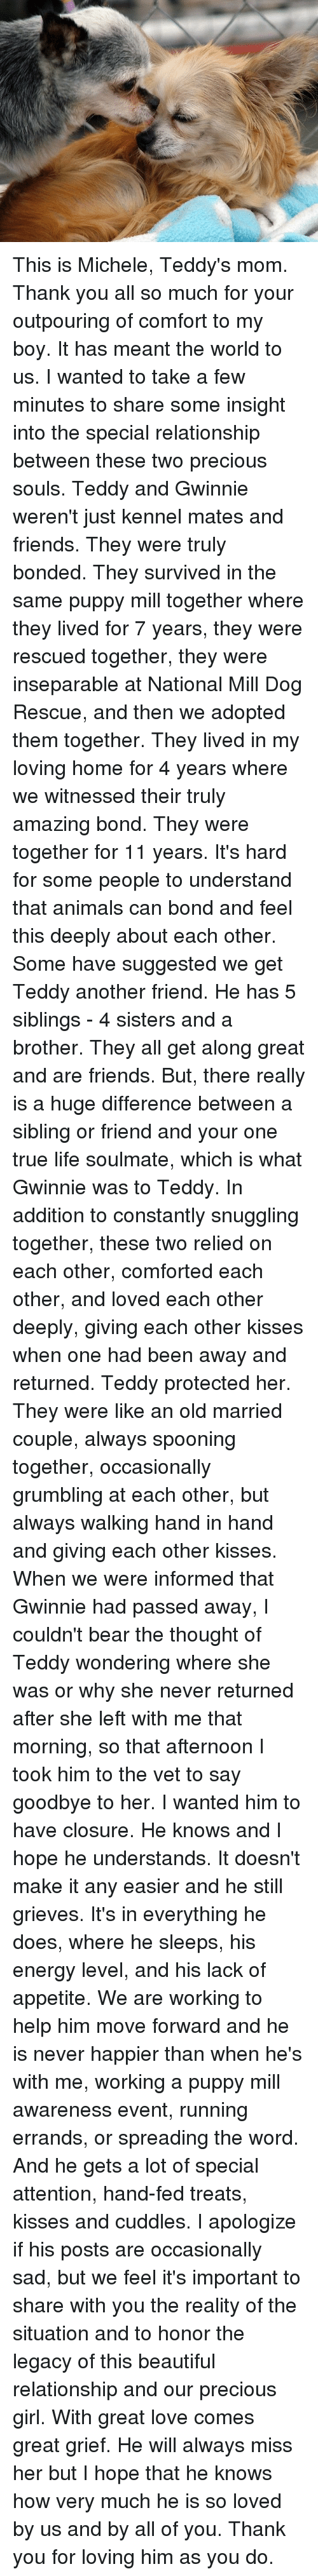 Animals, Anime, and Beautiful: This is Michele, Teddy's mom.  Thank you all so much for your outpouring of comfort to my boy.  It has meant the world to us.  I wanted to take a few minutes to share some insight into the special relationship between these two precious souls.  Teddy and Gwinnie weren't just kennel mates and friends.  They were truly bonded.  They survived in the same puppy mill together where they lived for 7 years, they were rescued together, they were inseparable at National Mill Dog Rescue, and then we adopted them together.  They lived in my loving home for 4 years where we witnessed their truly amazing bond.  They were together for 11 years.  It's hard for some people to understand that animals can bond and feel this deeply about each other.  Some have suggested we get Teddy another friend.  He has 5 siblings - 4 sisters and a brother.  They all get along great and are friends.  But, there really is a huge difference between a sibling or friend and your one true life soulmate, which is what Gwinnie was to Teddy.  In addition to constantly snuggling together, these two relied on each other, comforted each other, and loved each other deeply, giving each other kisses when one had been away and returned.  Teddy protected her.  They were like an old married couple, always spooning together, occasionally grumbling at each other, but always walking hand in hand and giving each other kisses.  When we were informed that Gwinnie had passed away, I couldn't bear the thought of Teddy wondering where she was or why she never returned after she left with me that morning, so that afternoon I took him to the vet to say goodbye to her.  I wanted him to have closure.  He knows and I hope he understands.  It doesn't make it any easier and he still grieves.  It's in everything he does, where he sleeps, his energy level, and his lack of appetite.    We are working to help him move forward and he is never happier than when he's with me, working a puppy mill awareness event, running errands, or spreading the word.  And he gets a lot of special attention, hand-fed treats, kisses and cuddles.    I apologize if his posts are occasionally sad, but we feel it's important to share with you the reality of the situation and to honor the legacy of this beautiful relationship and our precious girl.  With great love comes great grief.  He will always miss her but I hope that he knows how very much he is so loved by us and by all of you.  Thank you for loving him as you do.